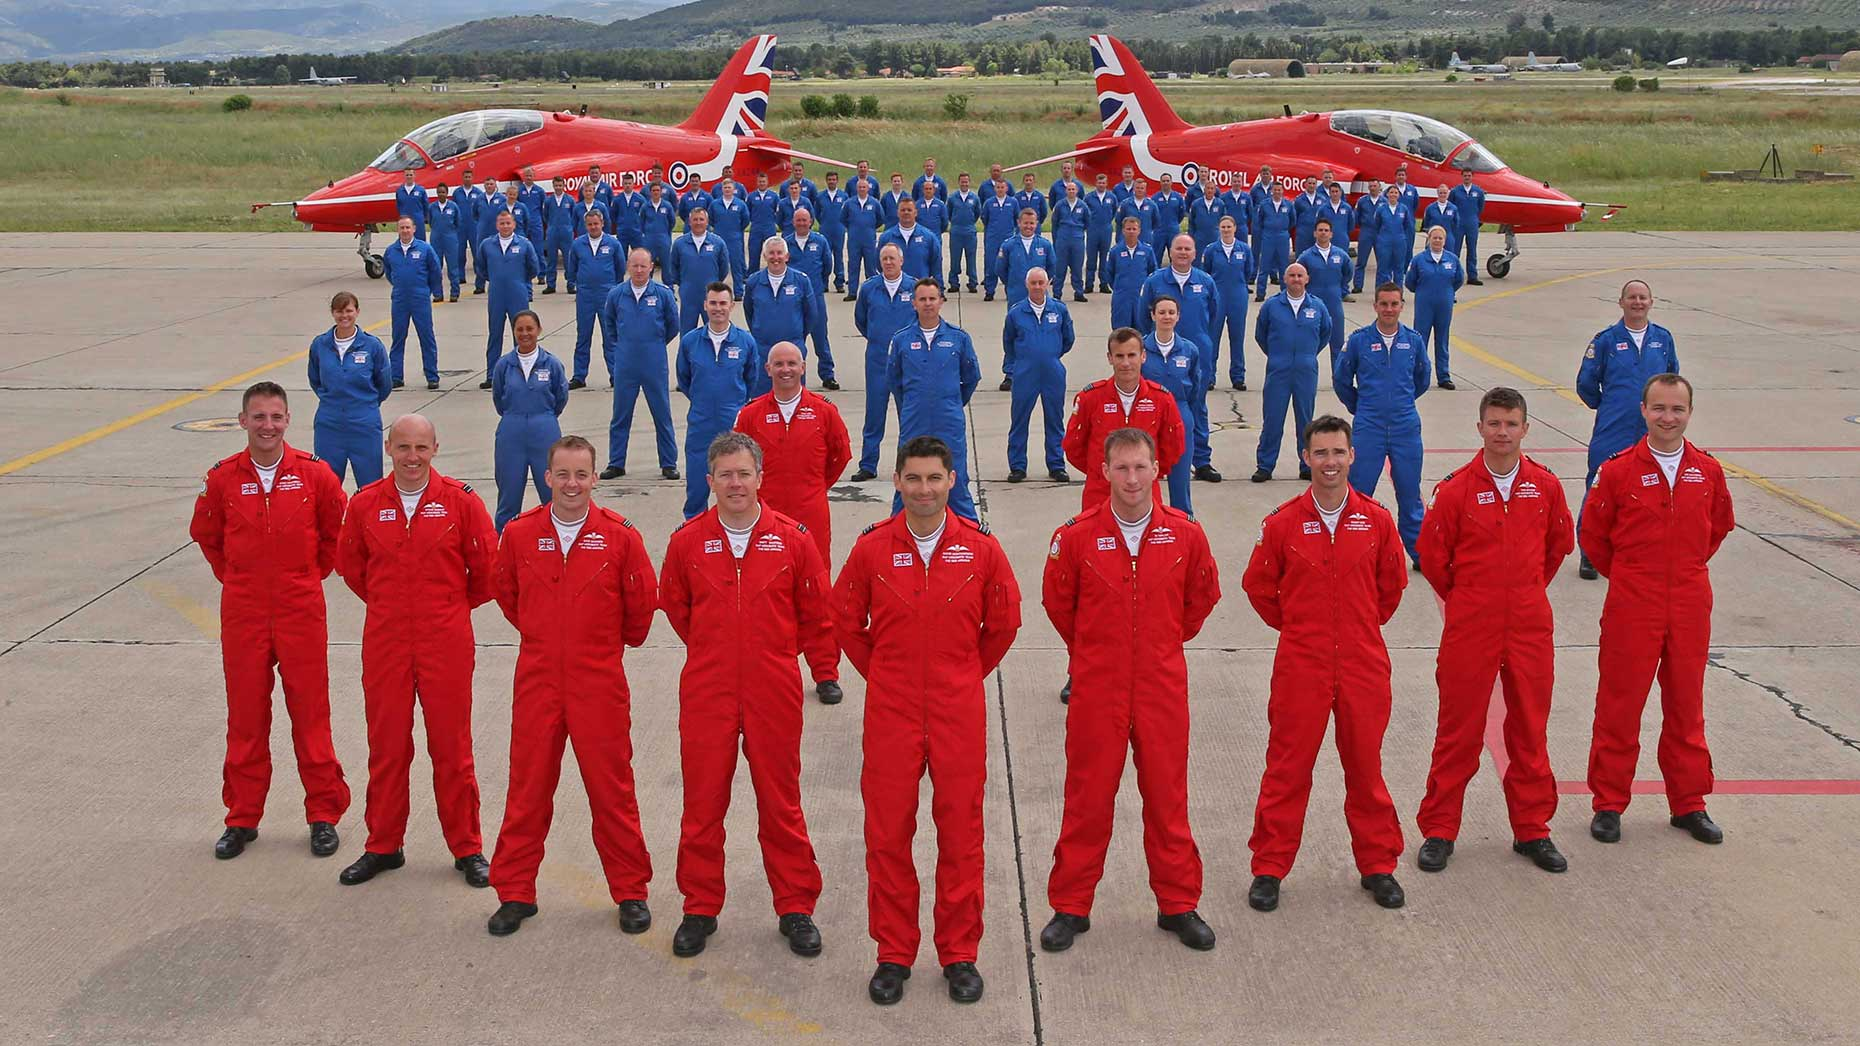 The Red Arrows pilots and ground crew wear their distinctive red and blue flying suits in Greece after the team successfully gained Public Display Authority for 2016. Photo: SAC Adam Fletcher, MoD/Crown Copyright 2016.